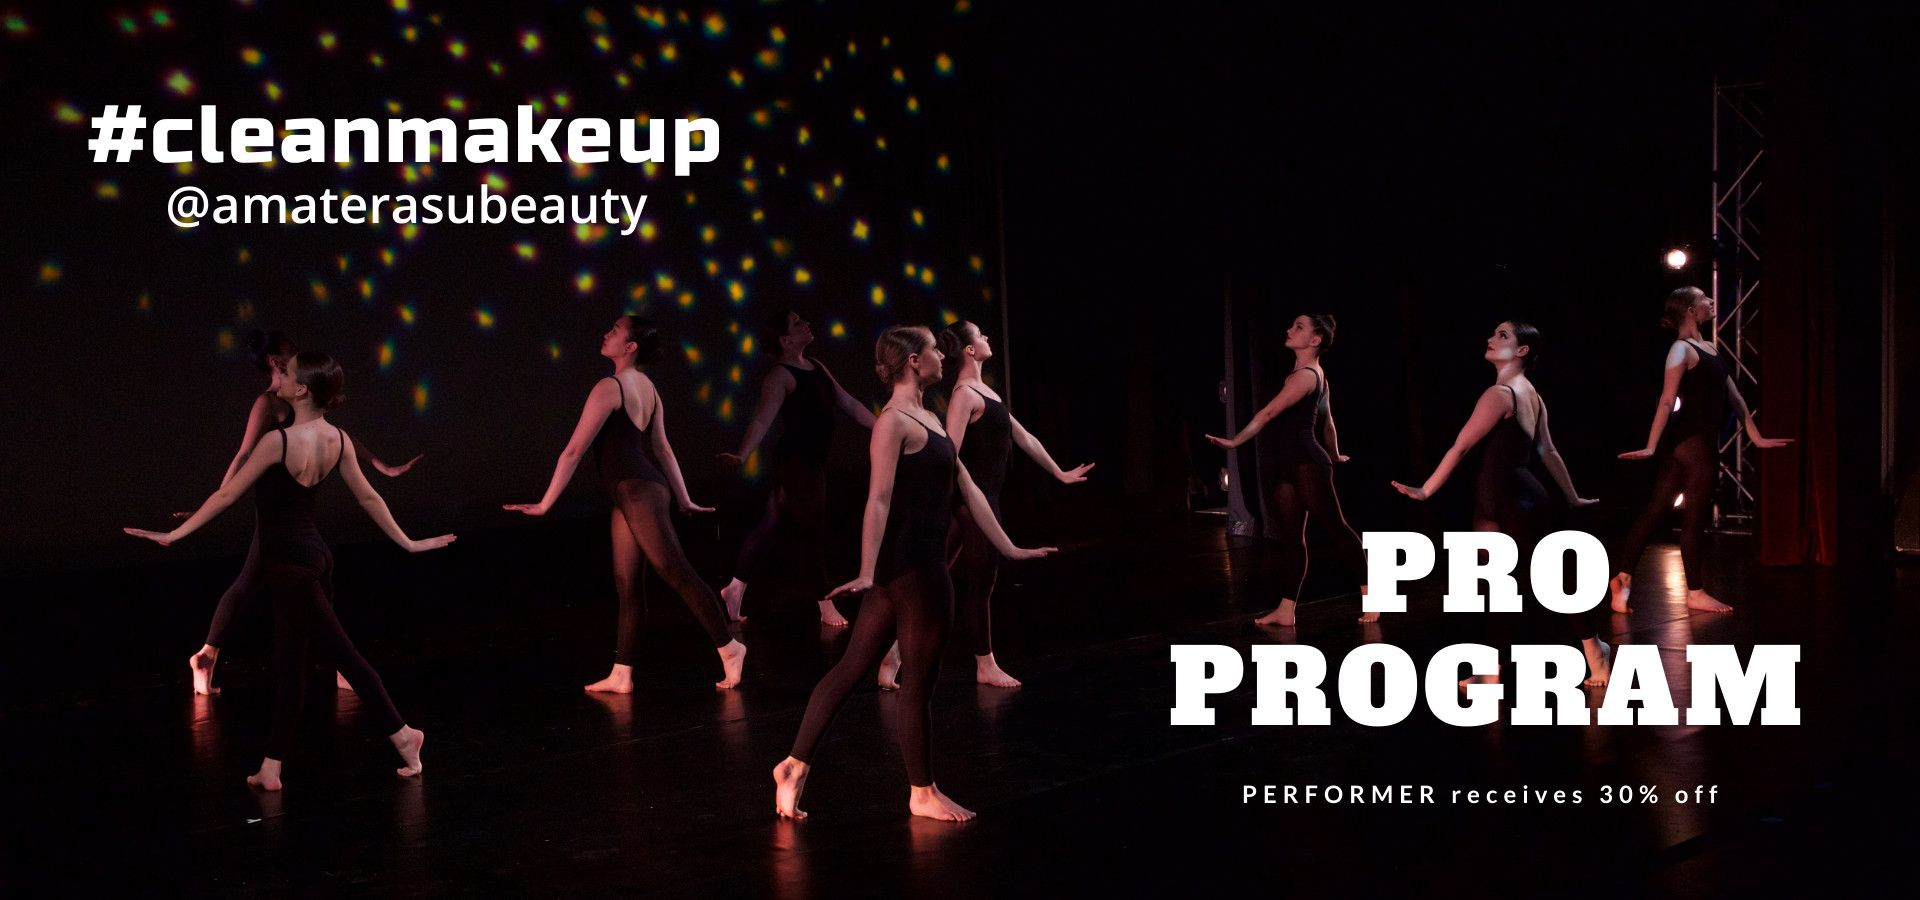 Dancers, Talents Pro Program 24 hour smudgefree makeup in